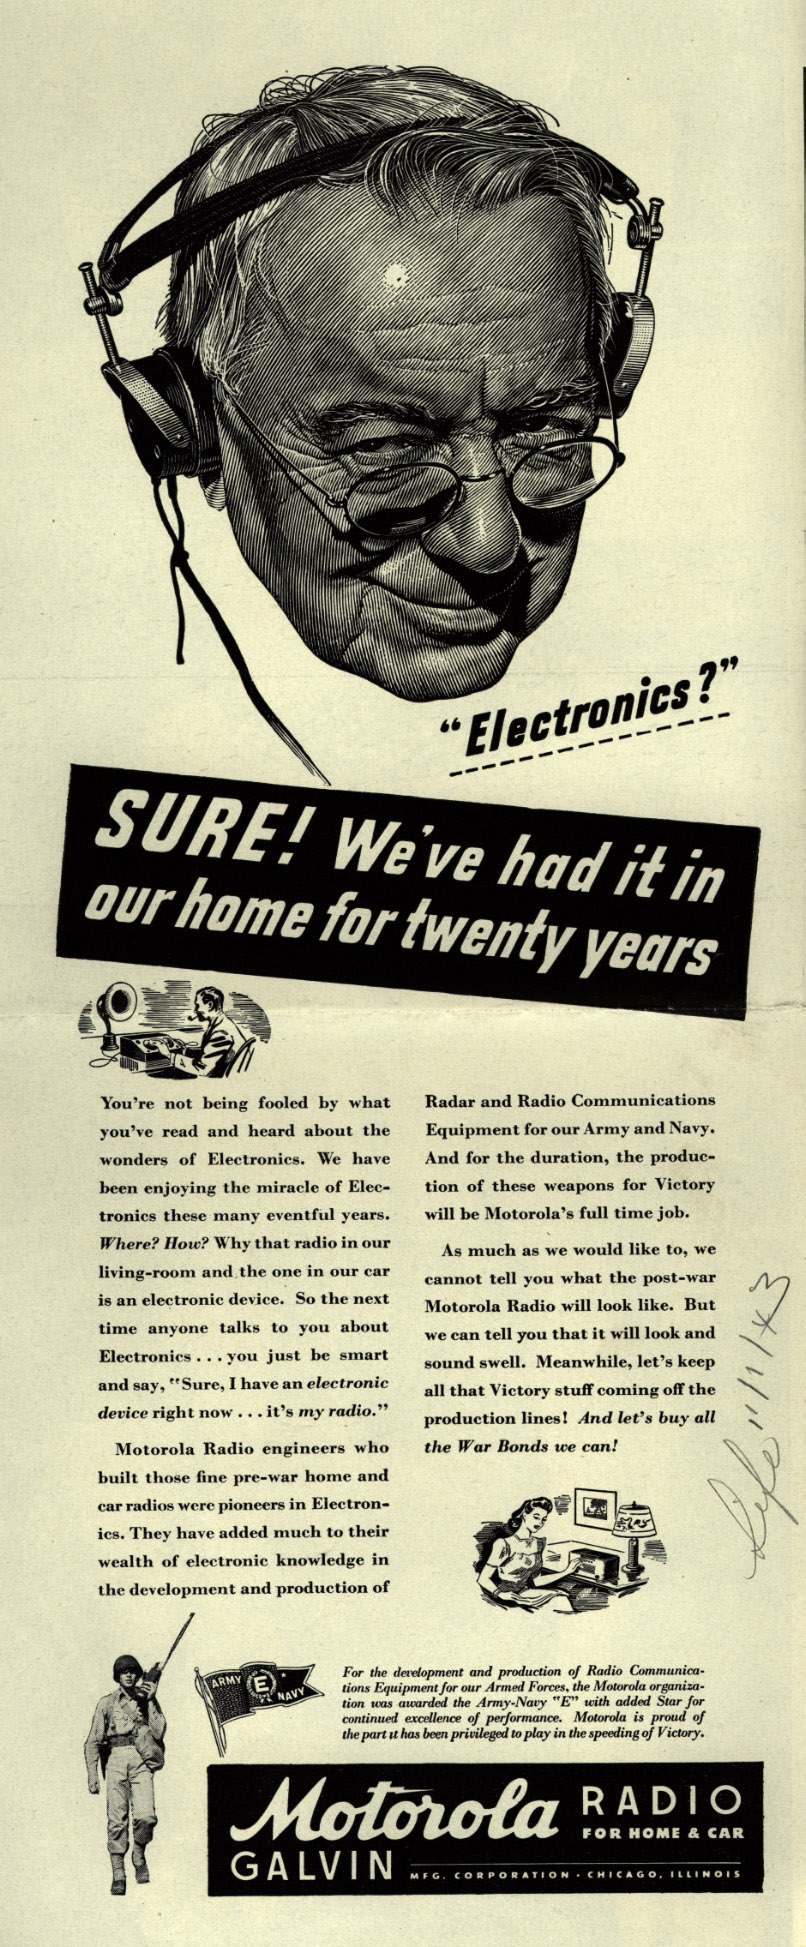 Electronics_Sure_Weve_had_it_in_our_home_for_twenty_years